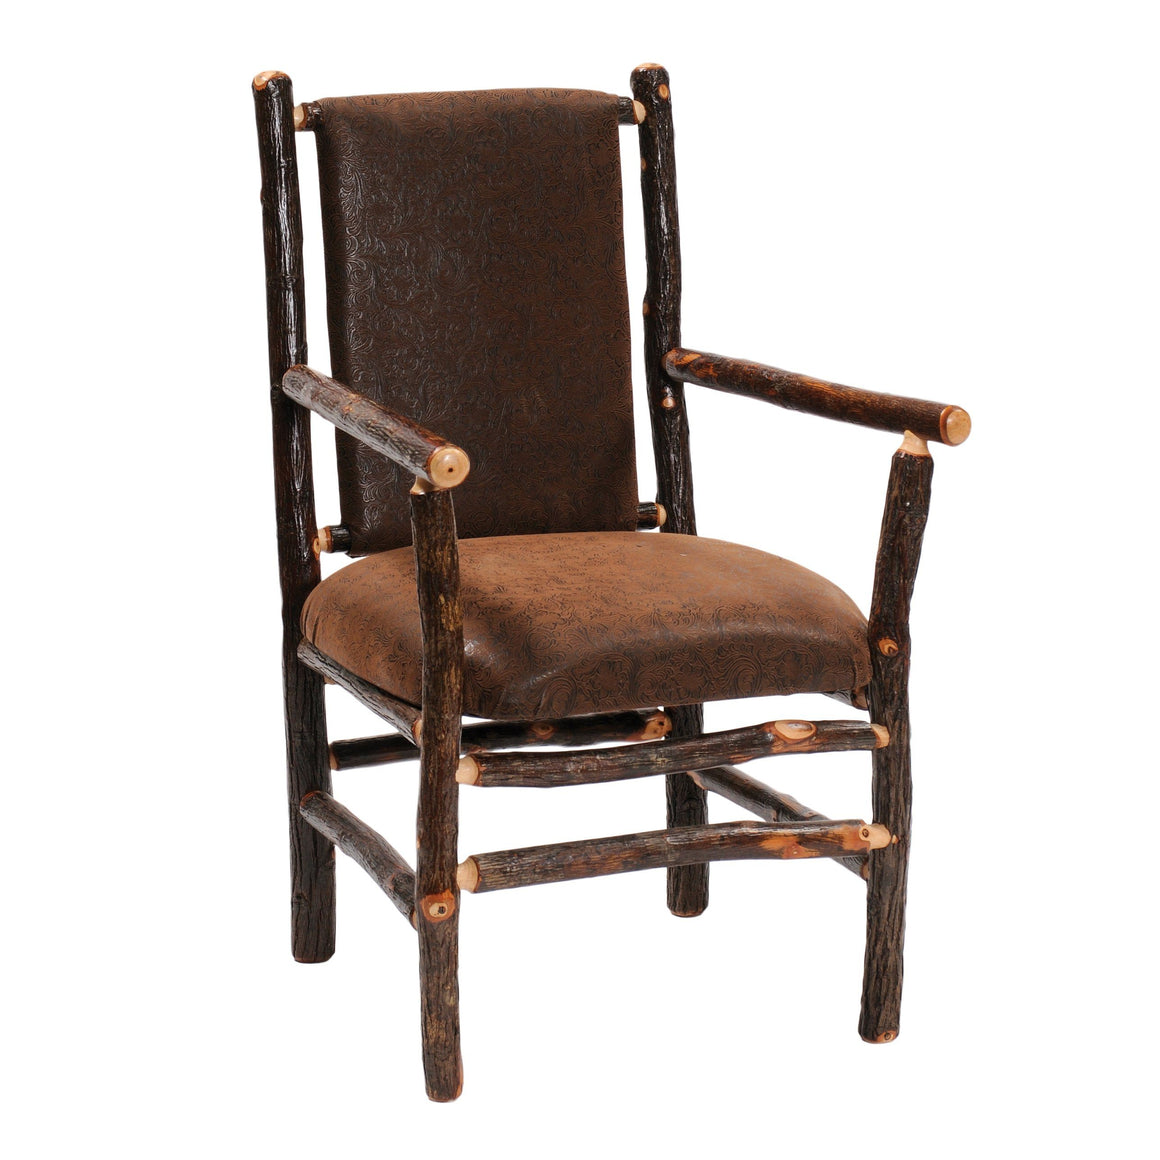 Natural Hickory Log Arm Chair - Standard Finish Chair Fireside Lodge Customer's Own Material